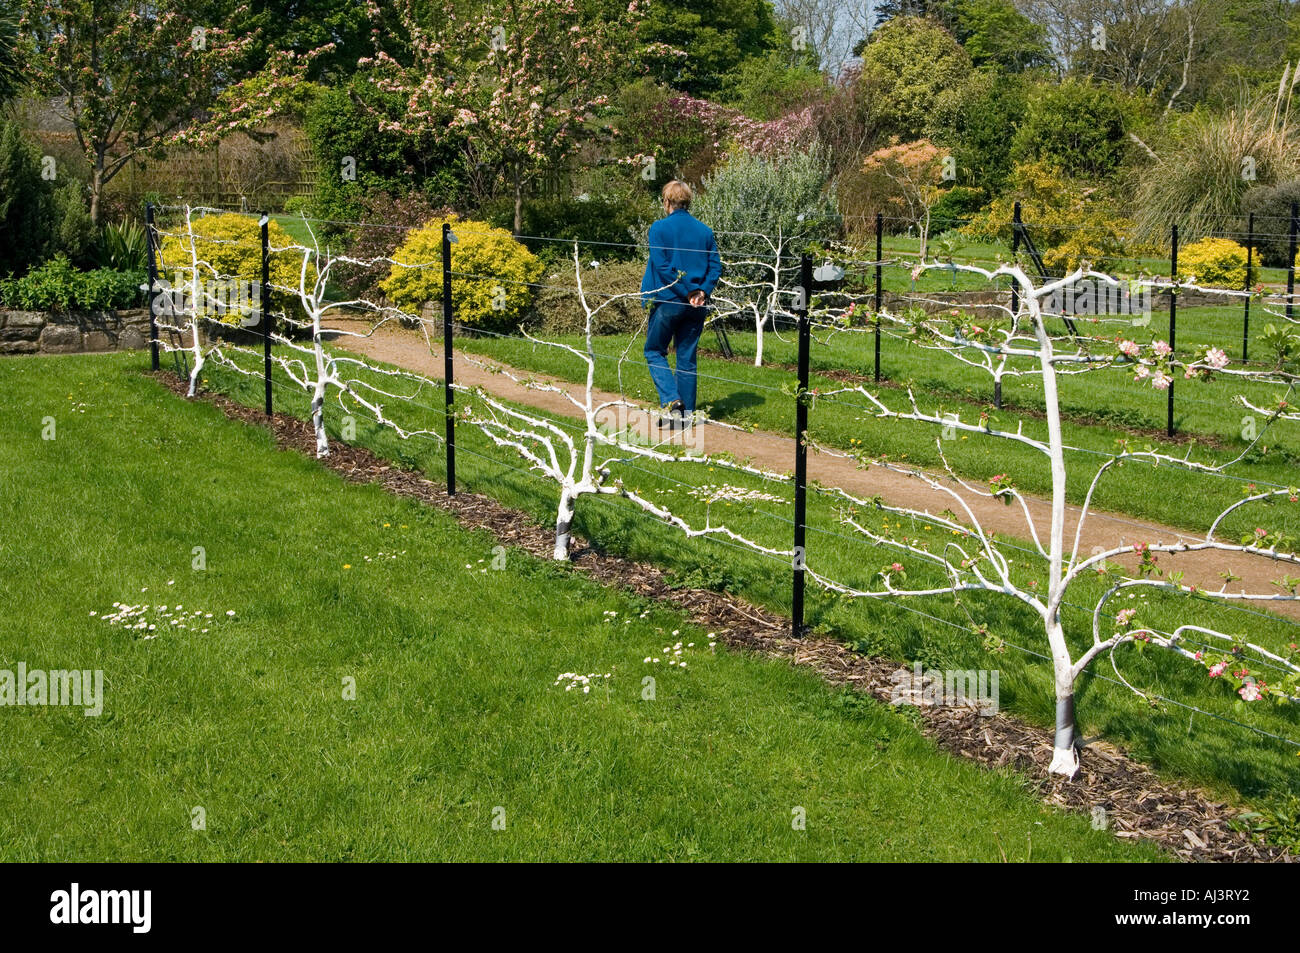 The Victorian Kitchen Garden Fruit Trees Sepaliered On A Wire Fence In A Victorian Kitchen